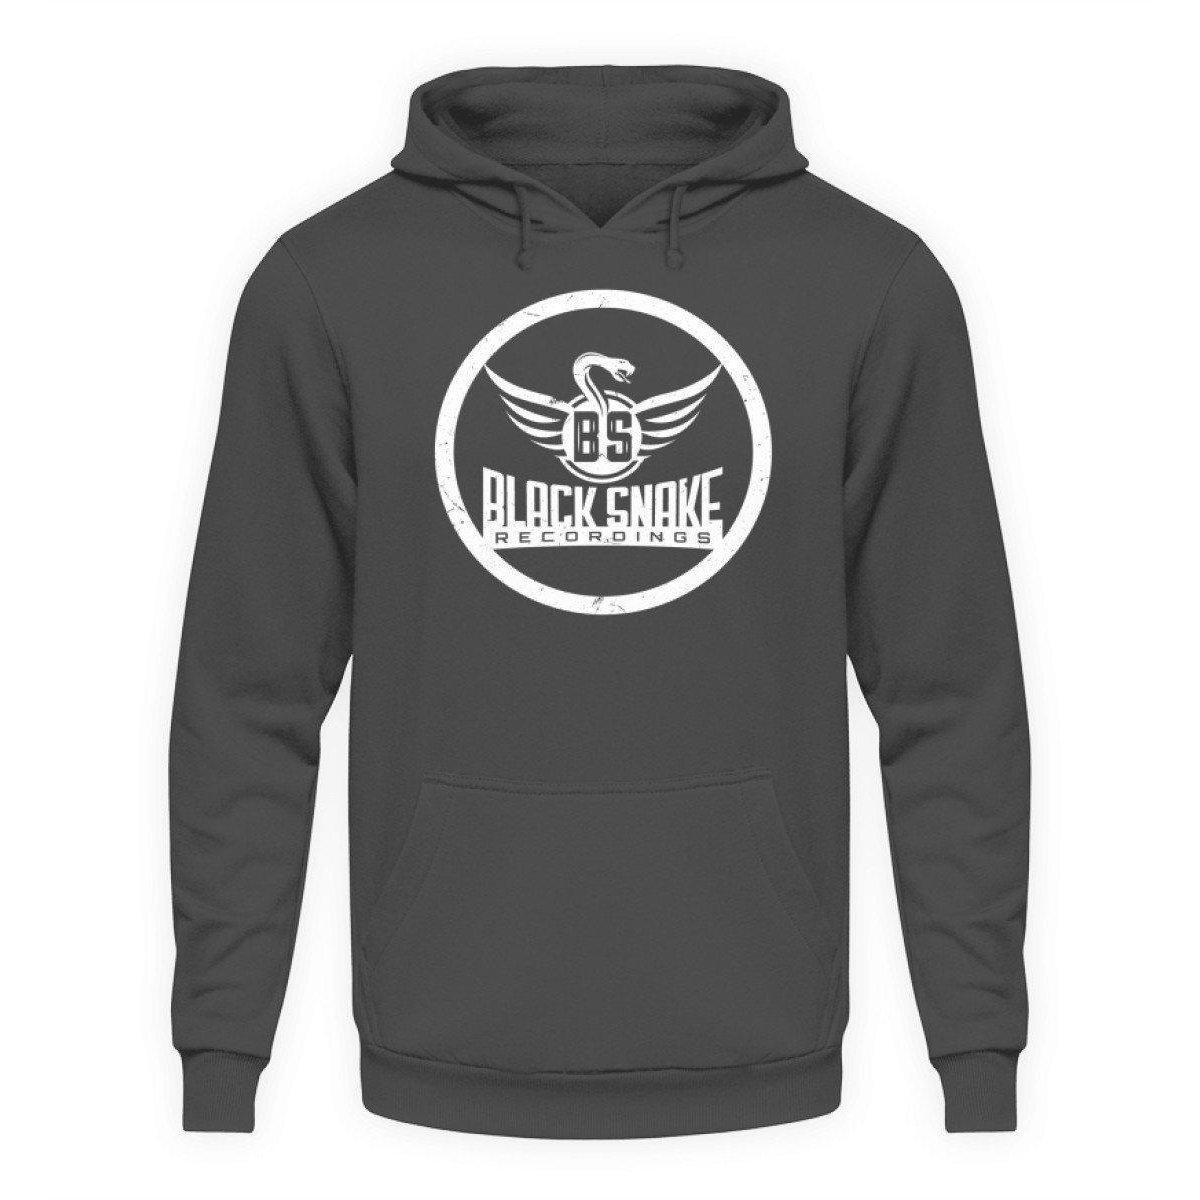 Black Snake Recordings Collection - Unisex Kapuzenpullover Hoodie Unisex Hoodie Steel Grey (Solid) / L - Rave On!® der Club & Techno Szene Shop für Coole Junge Mode Streetwear Style & Fashion Outfits + Sexy Festival 420 Stuff